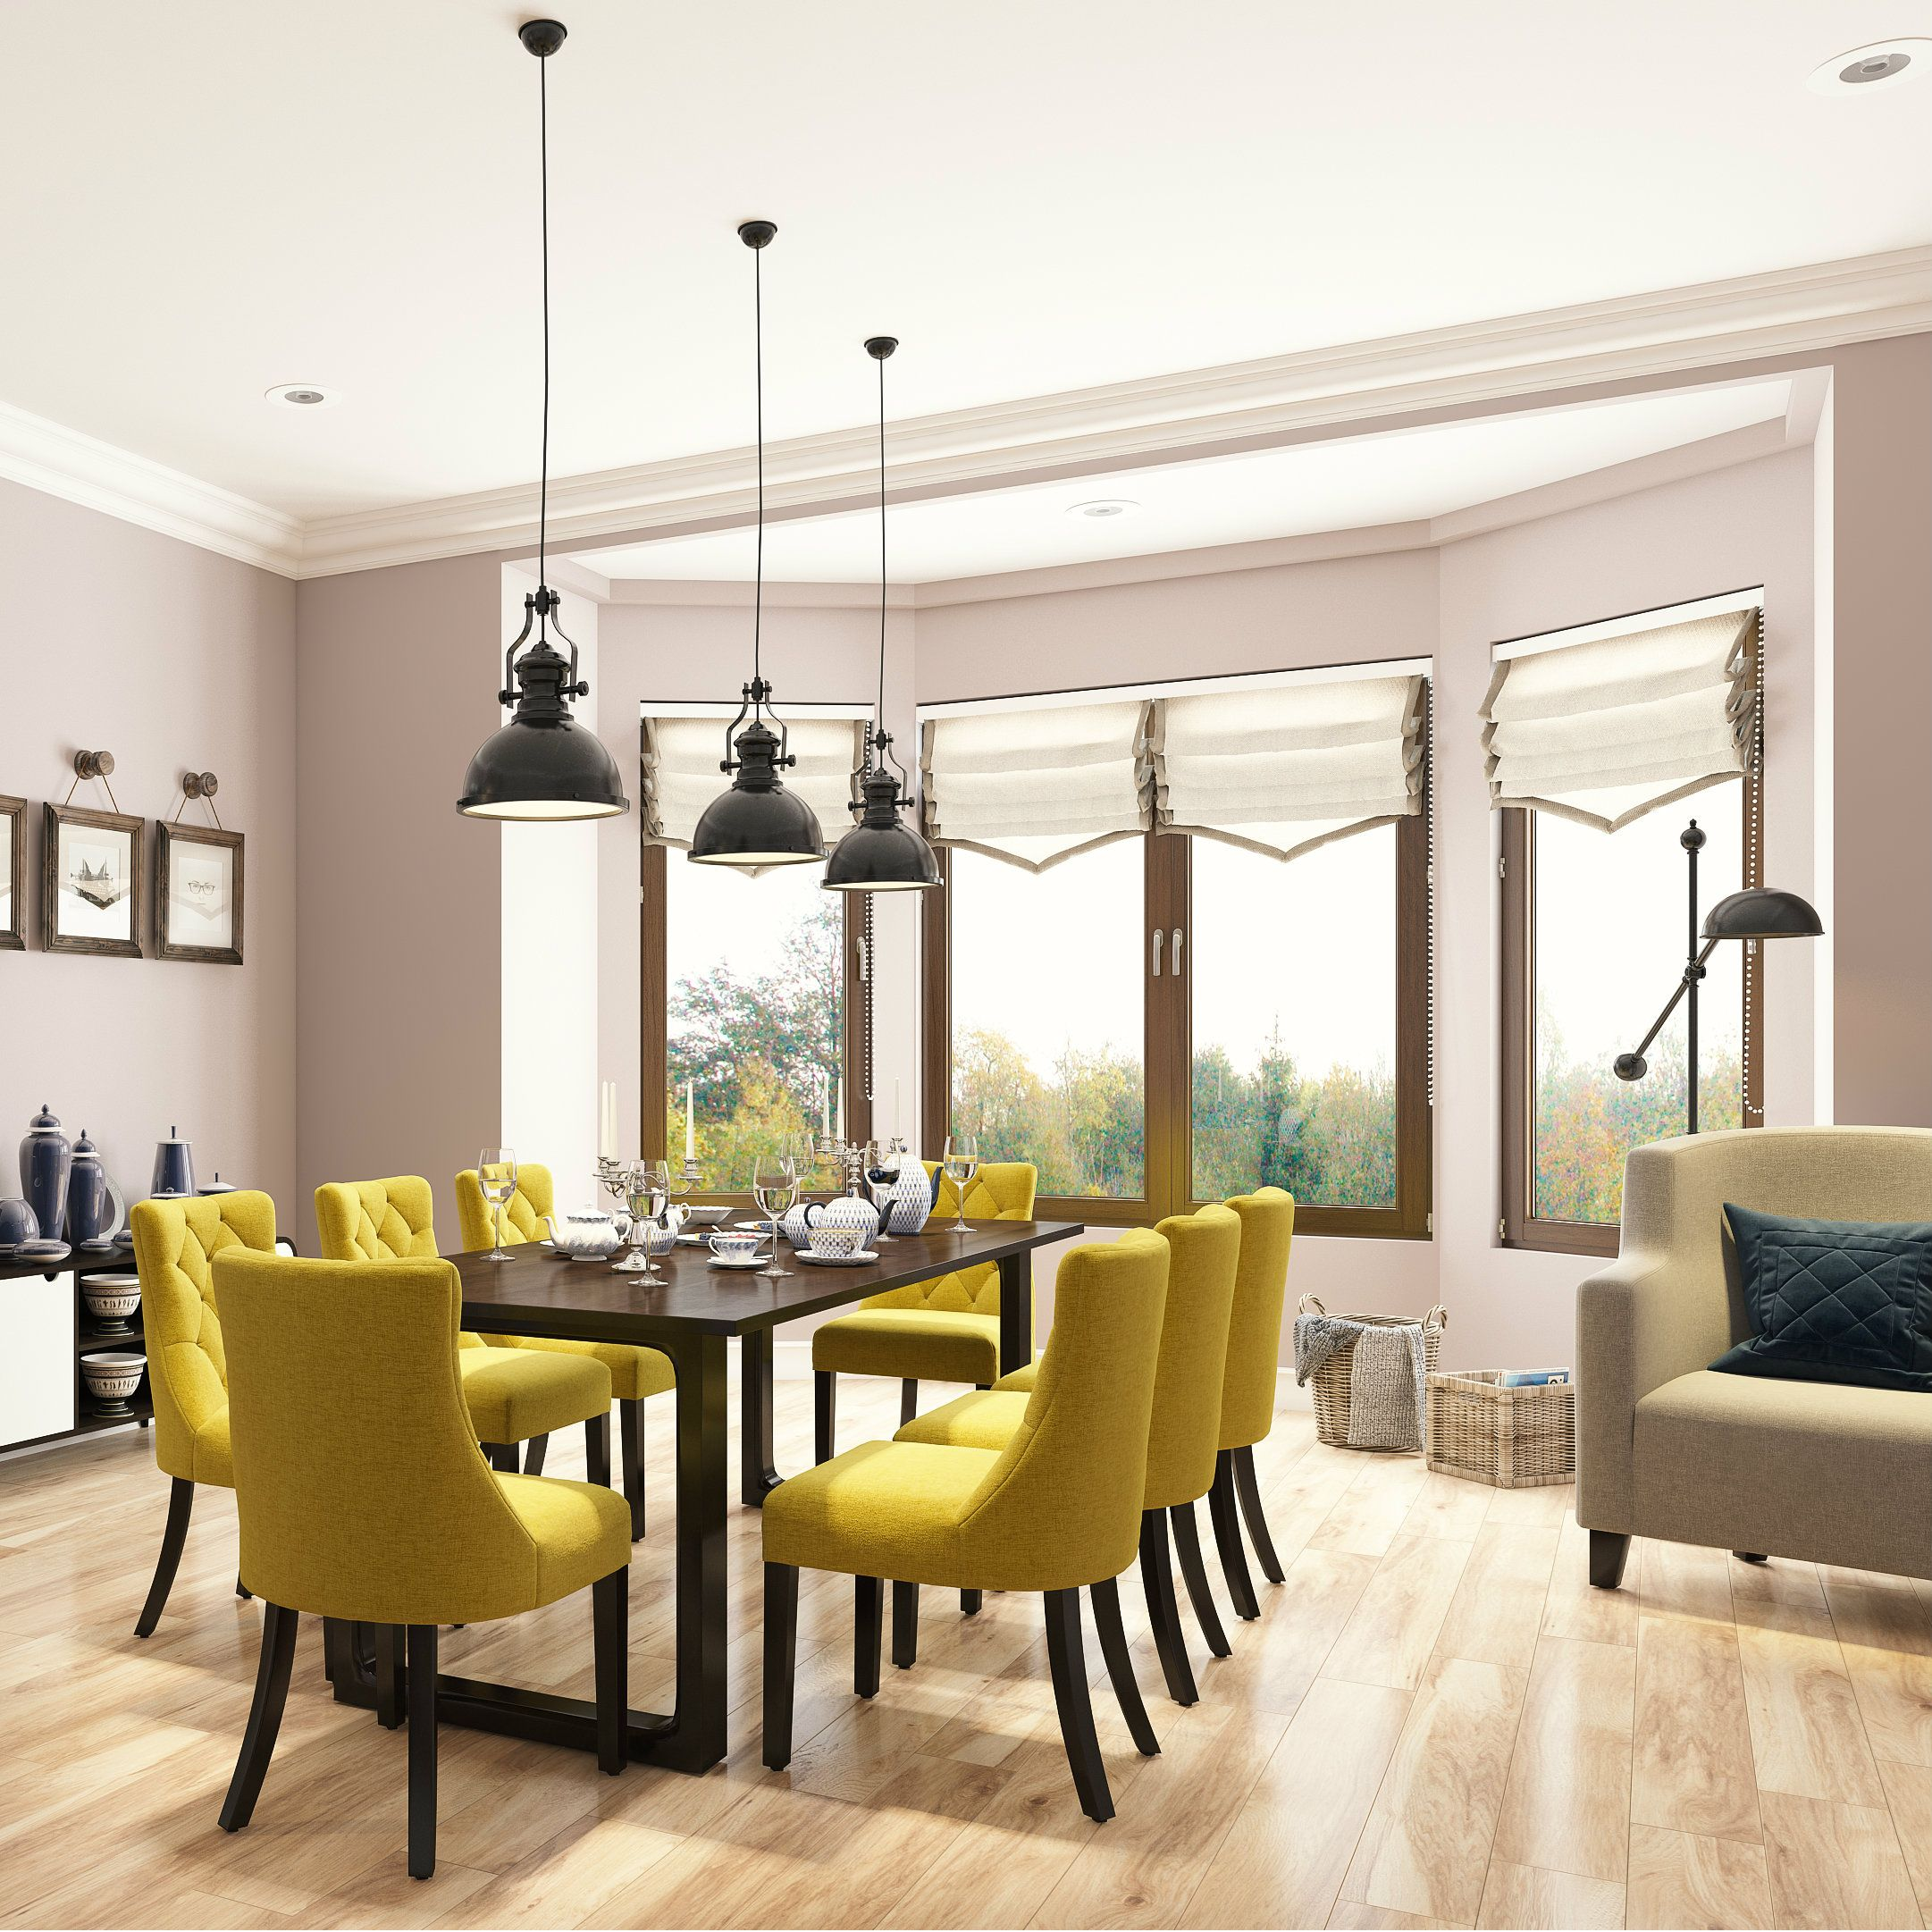 A Neutral Dining Room Contrasted With Mustard Yellow Dining Chairs Yellow Dining Chairs Dining Room Colors Colored Dining Chairs